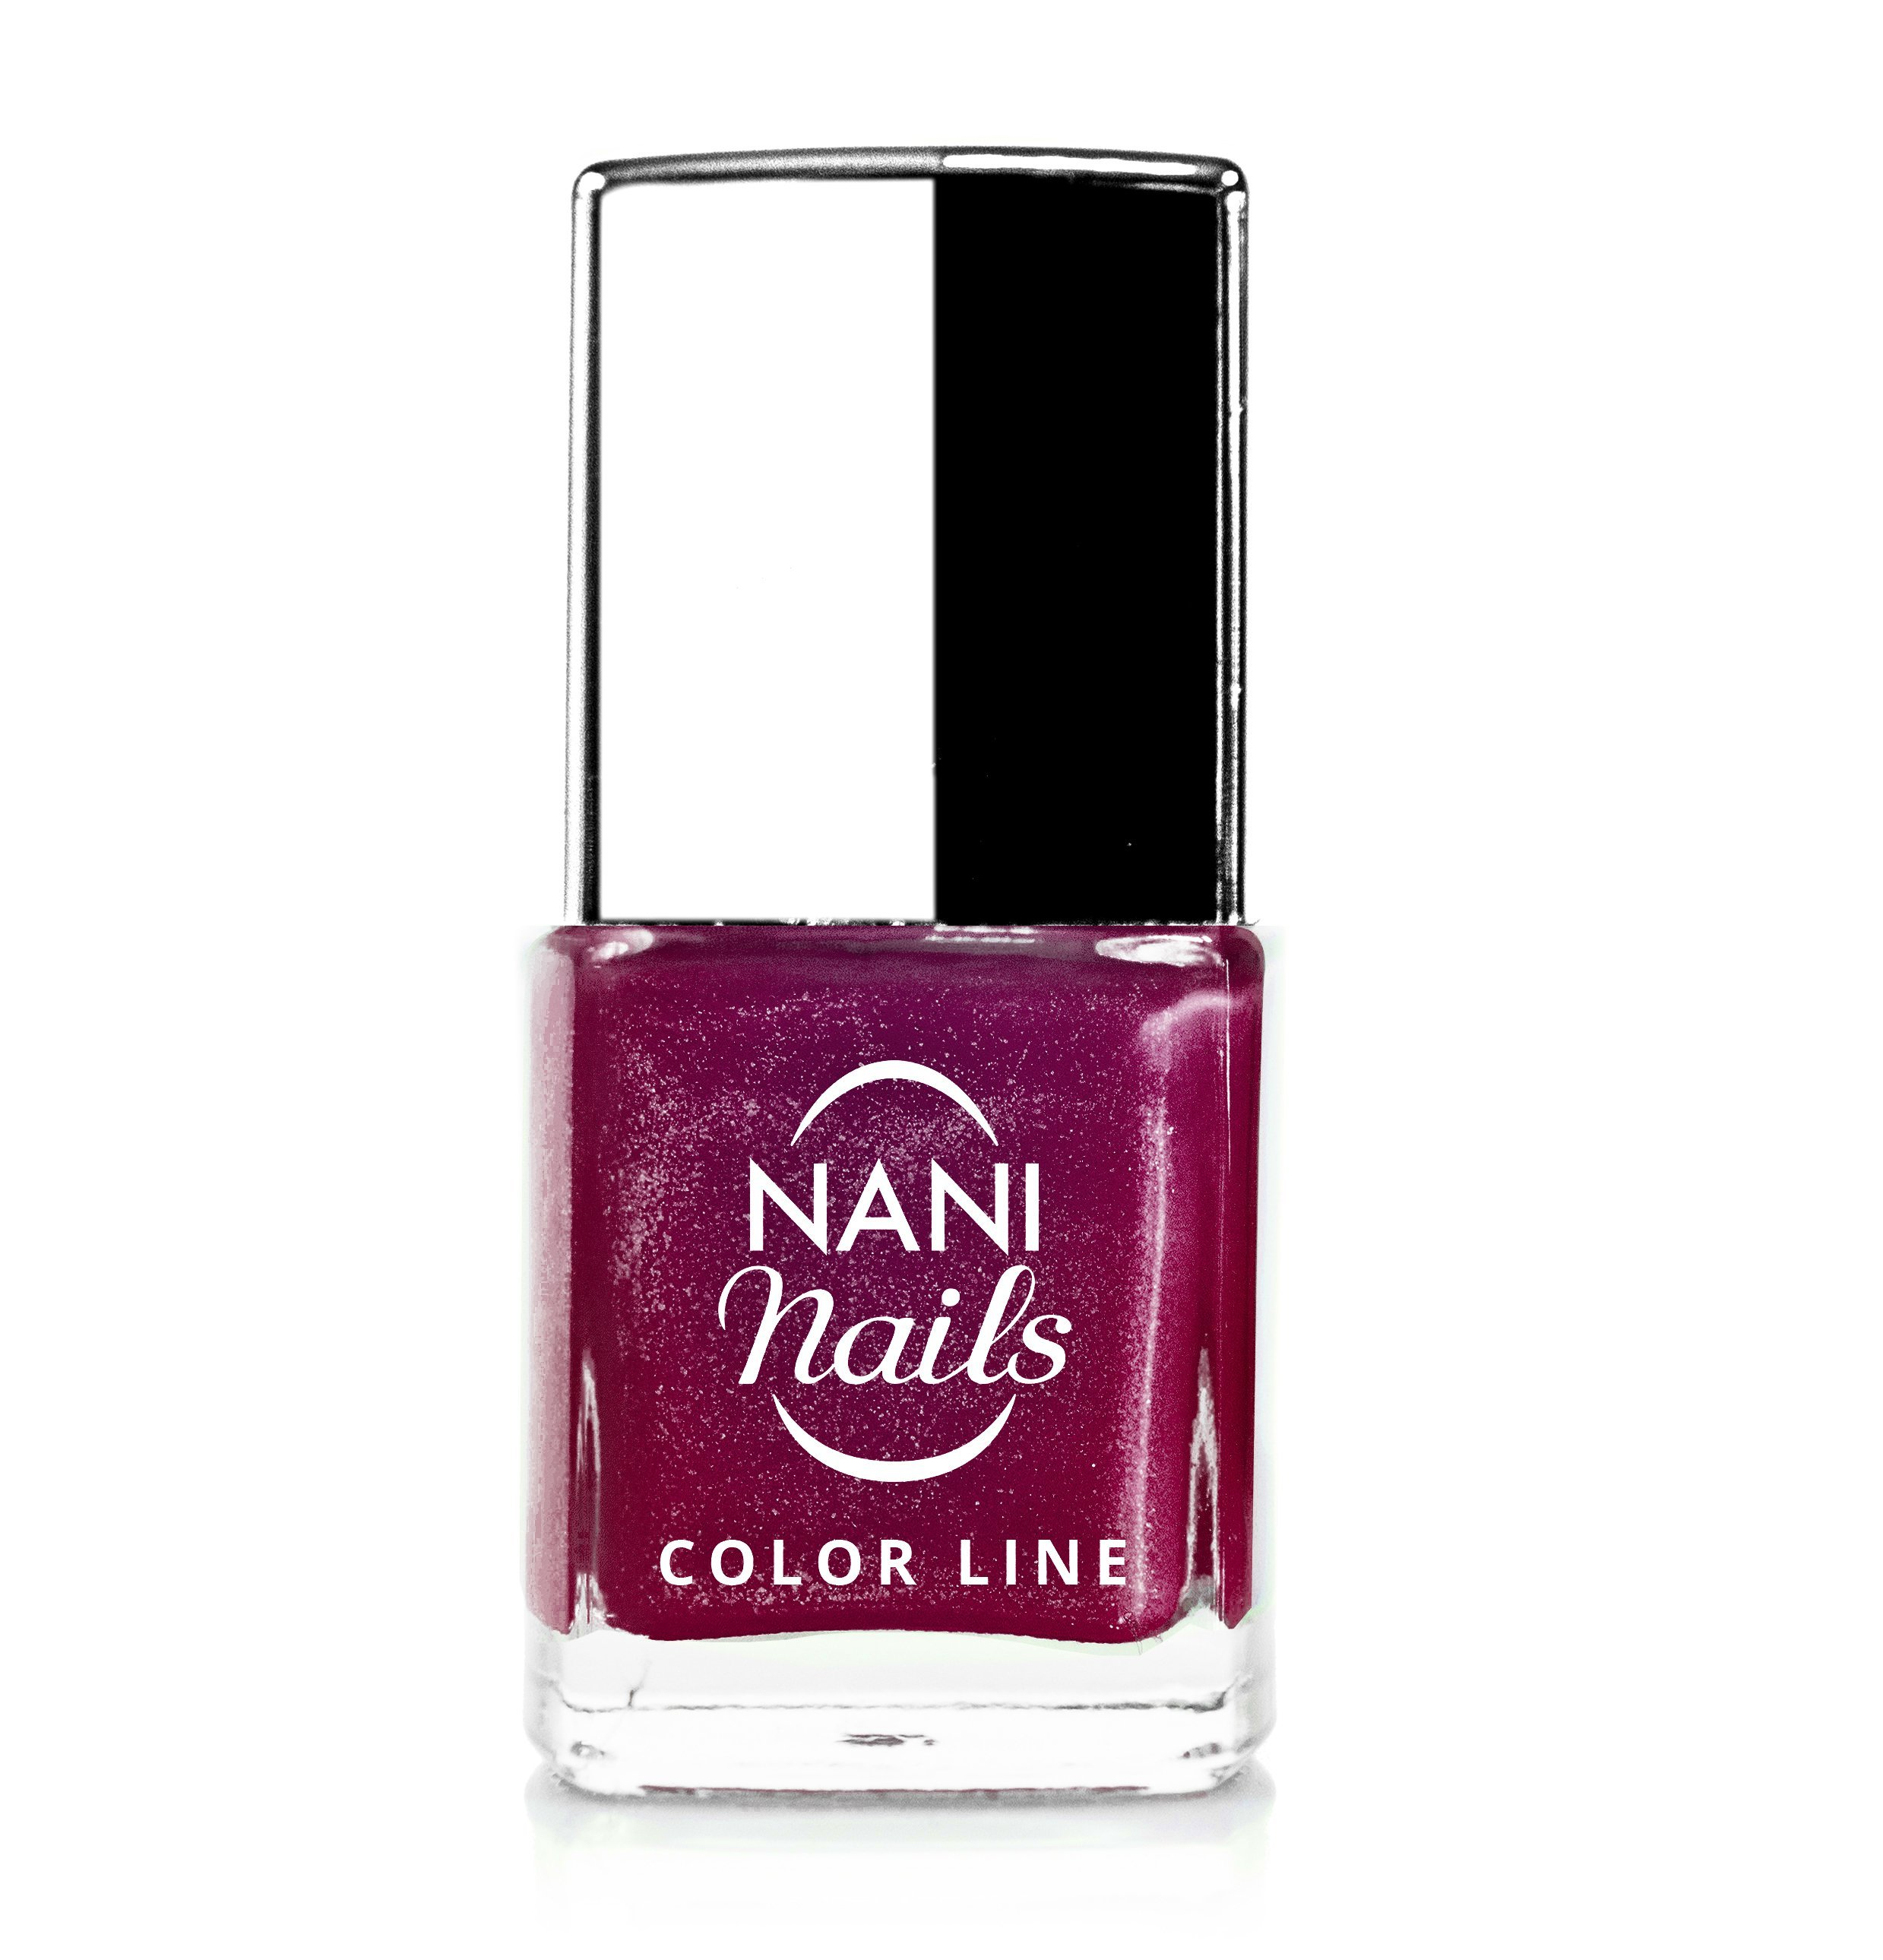 NANI lak Color Line 9 ml - 85